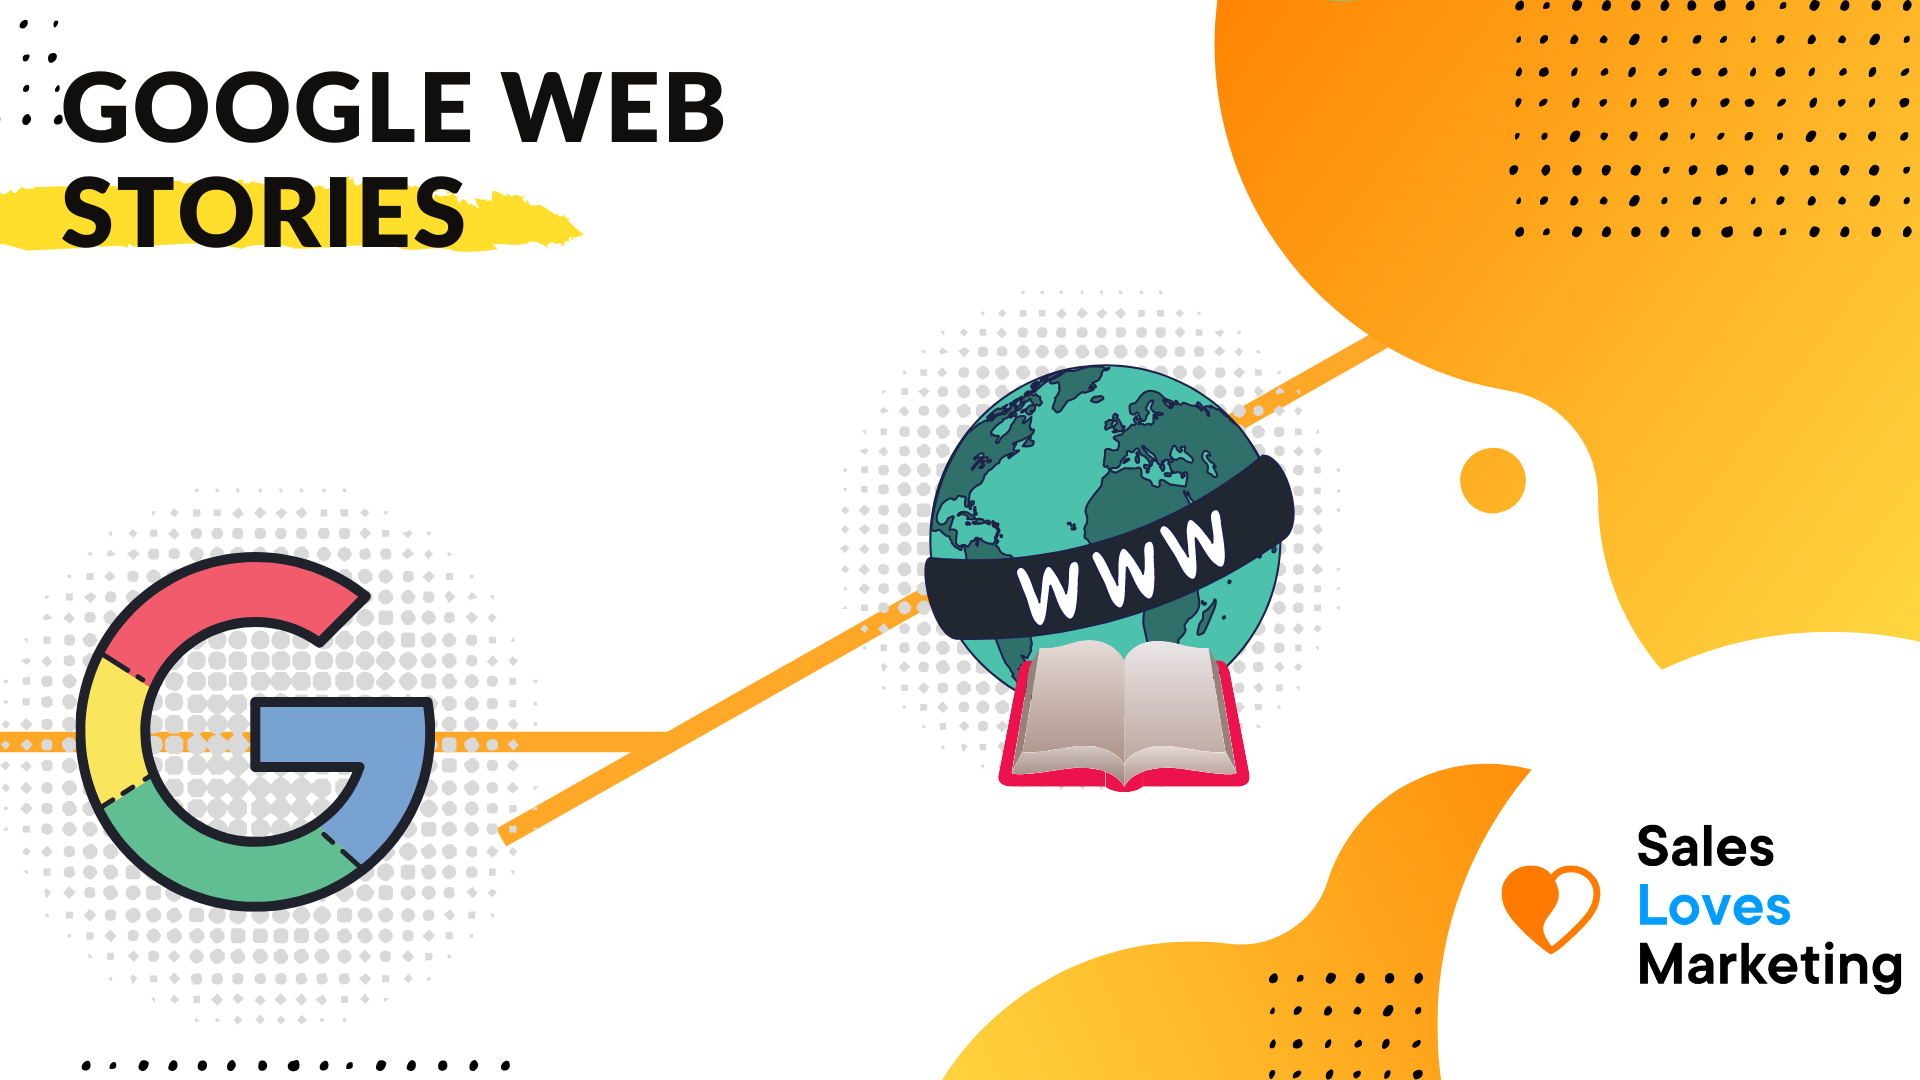 Google Web Stories, everything you need to know about it.